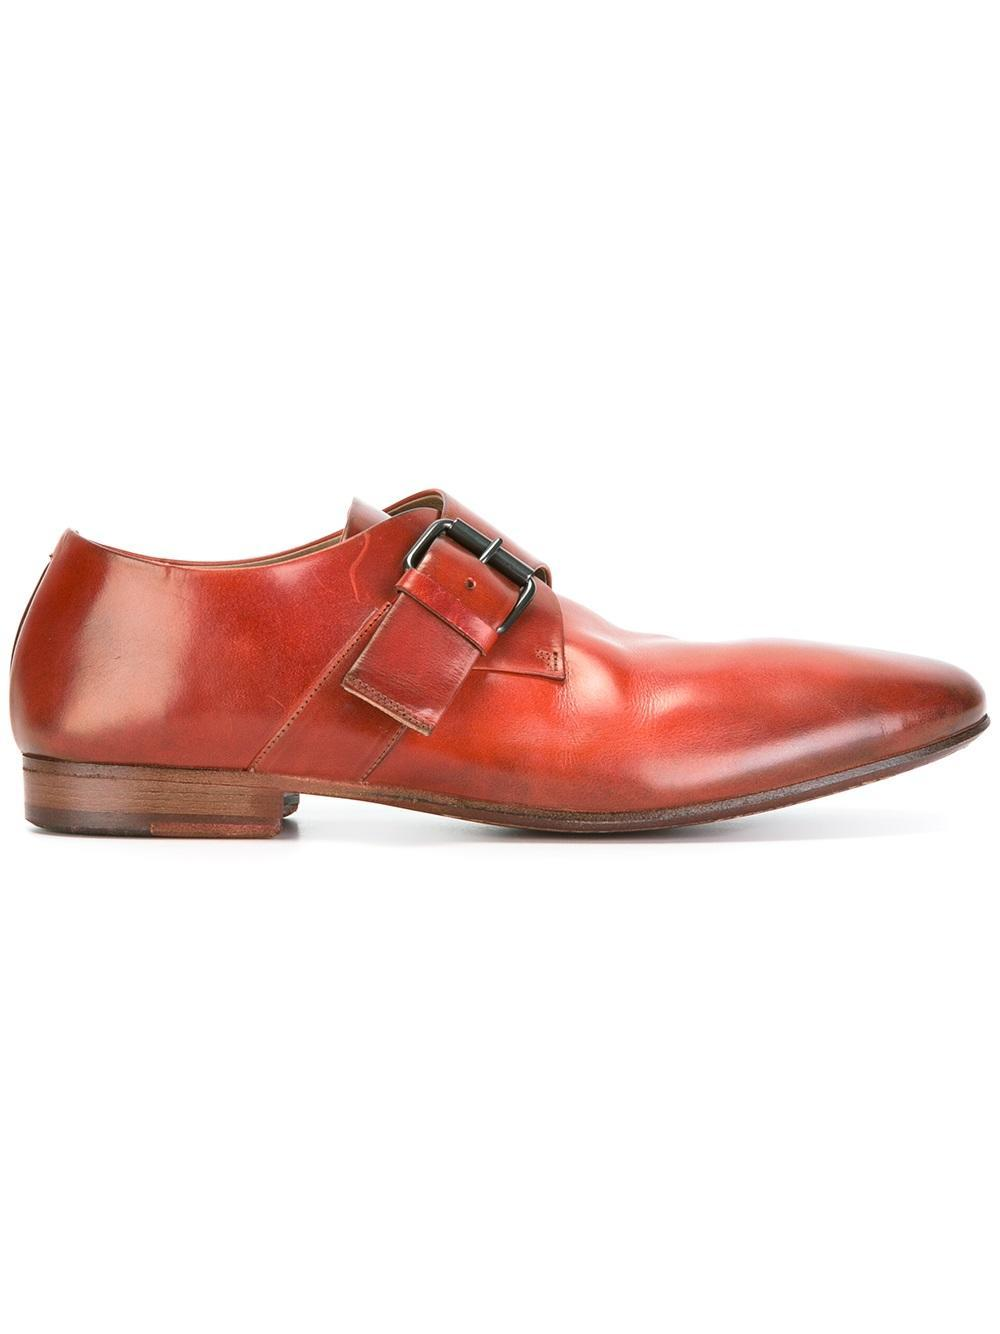 57162a1e23 Marsèll Single Strap Monk Shoes in Red for Men - Lyst